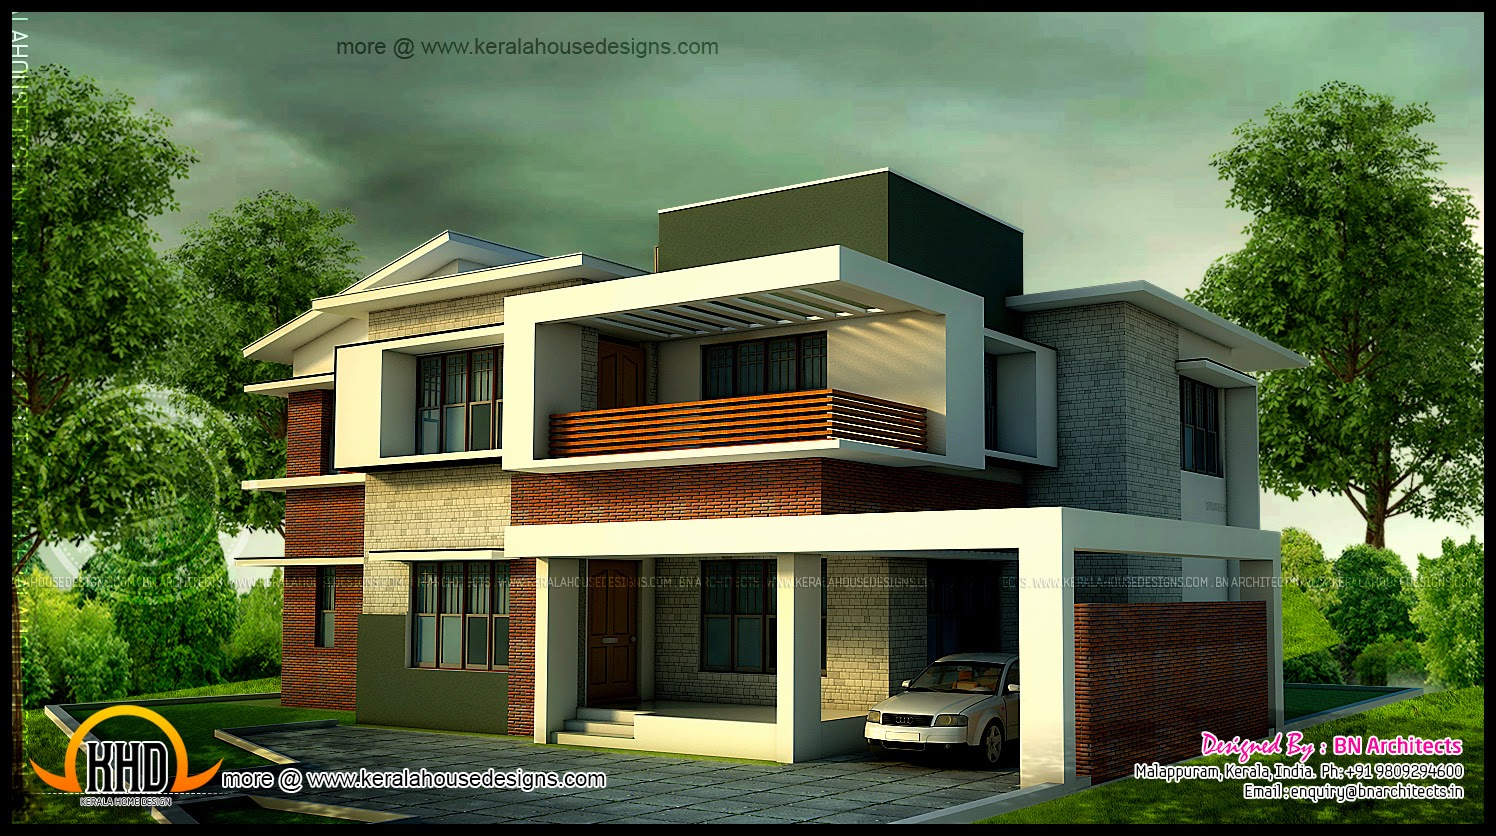 Bedroom modern home in 3440 sq feet floor plan included kerala